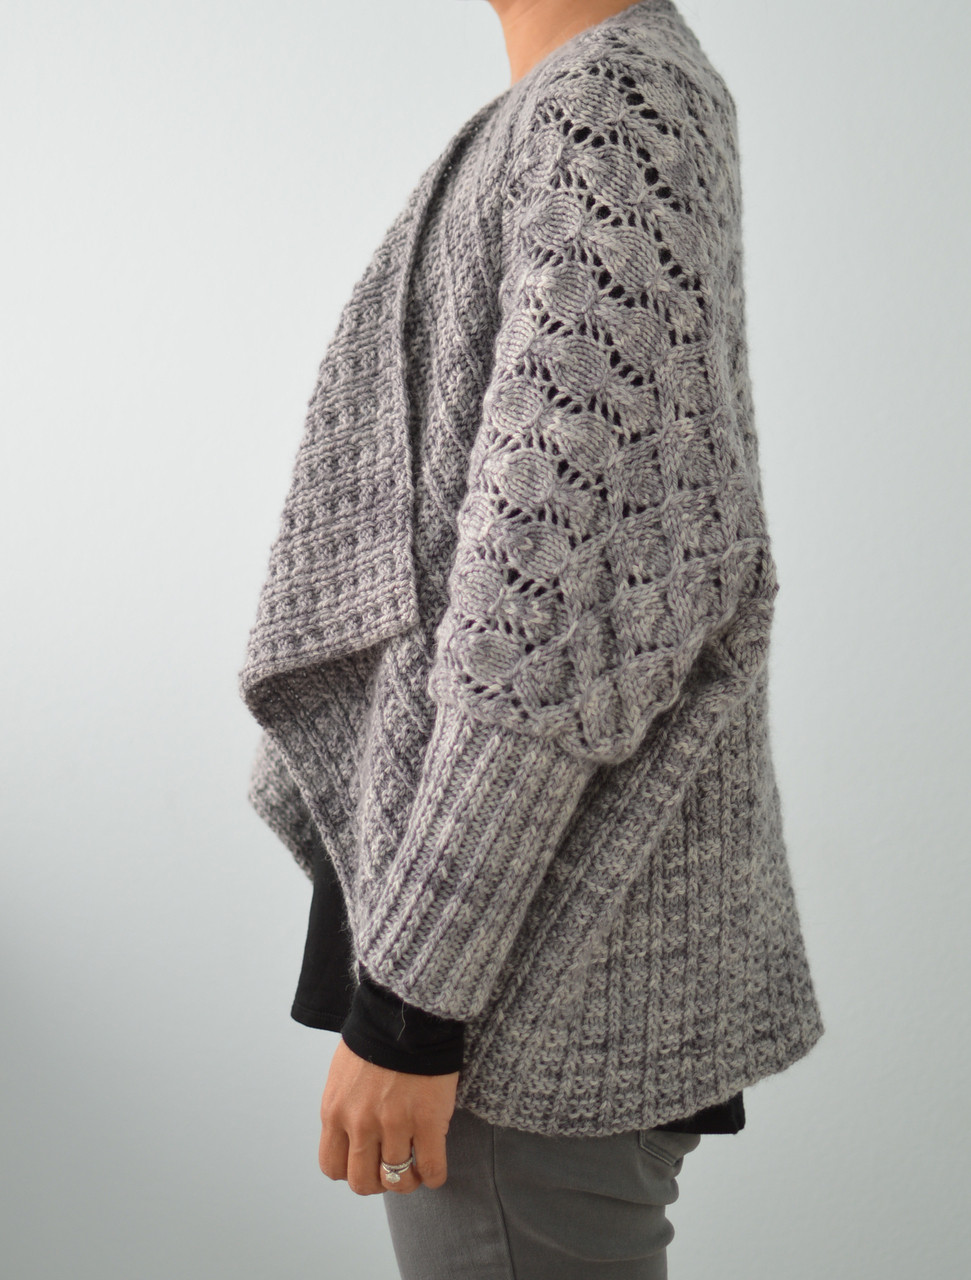 Two-Way Wrap Cardigan Knitting Pattern